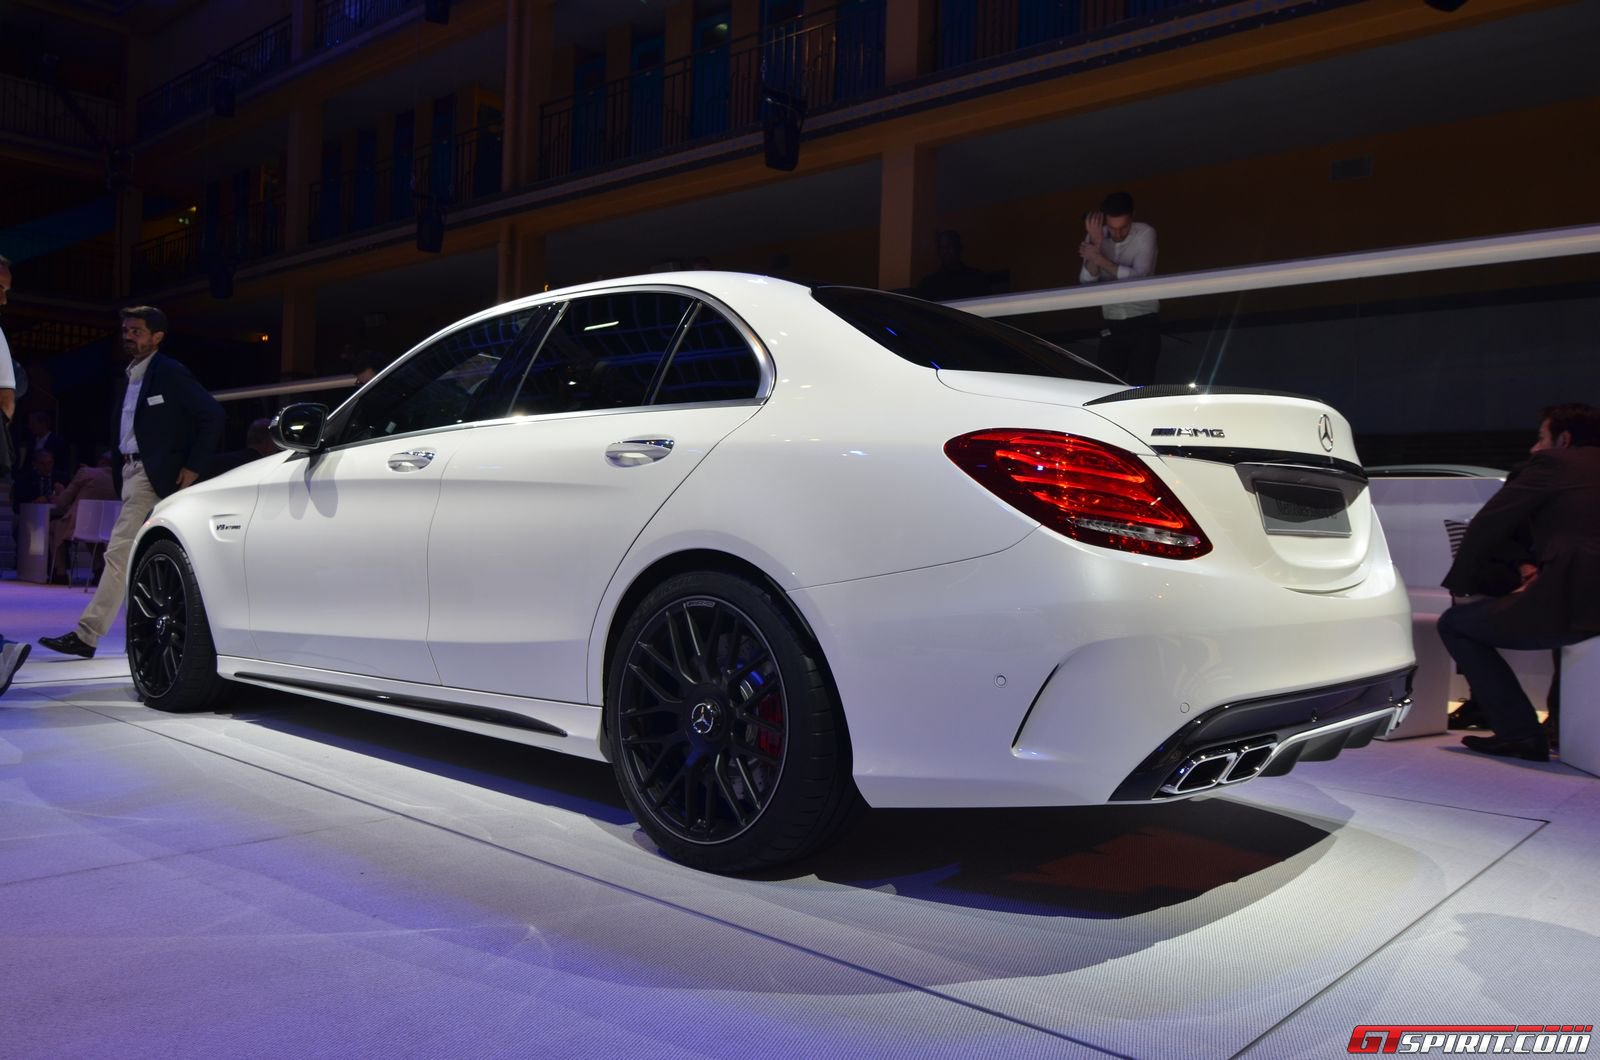 paris 2014 2015 mercedes amg c63 and c63 s gtspirit. Black Bedroom Furniture Sets. Home Design Ideas